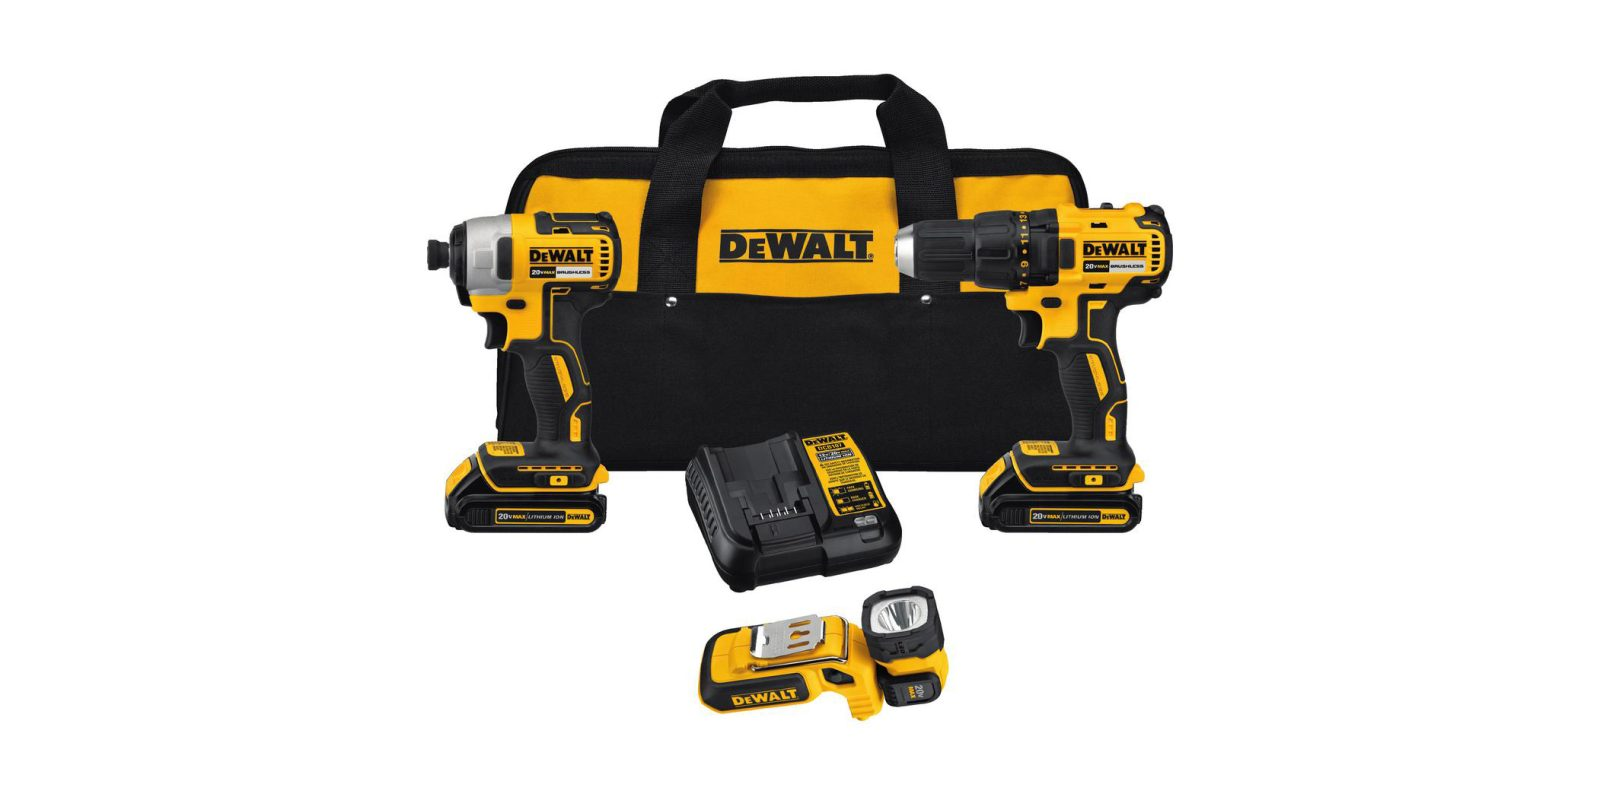 DEWALT drills, saws, accessories and more are on sale from $30 at Home Depot, today only